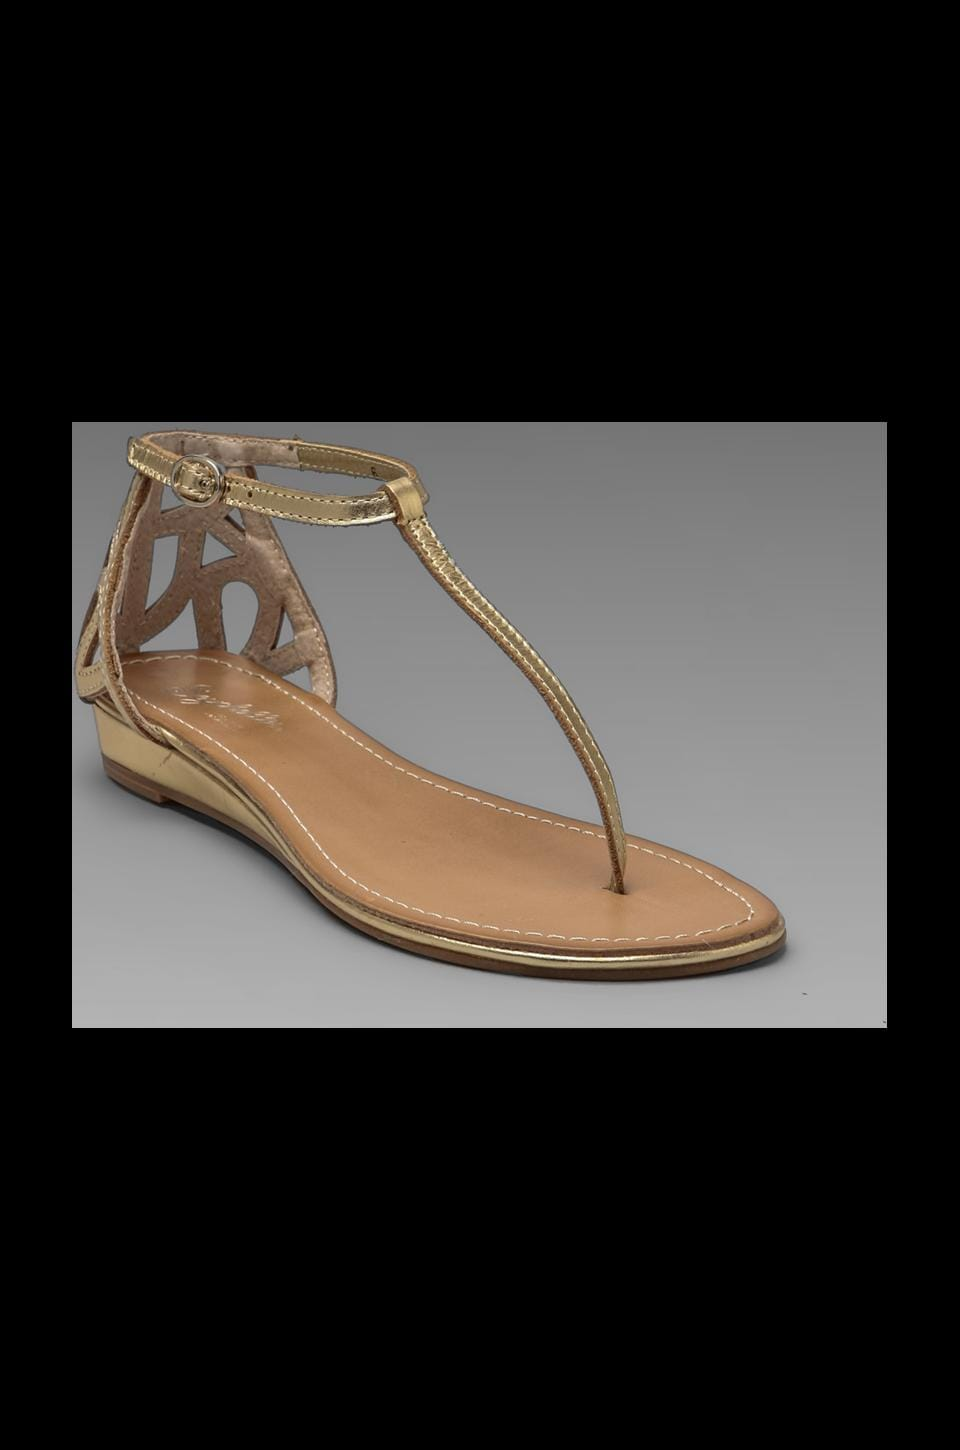 Seychelles Fearless Sandal in Gold